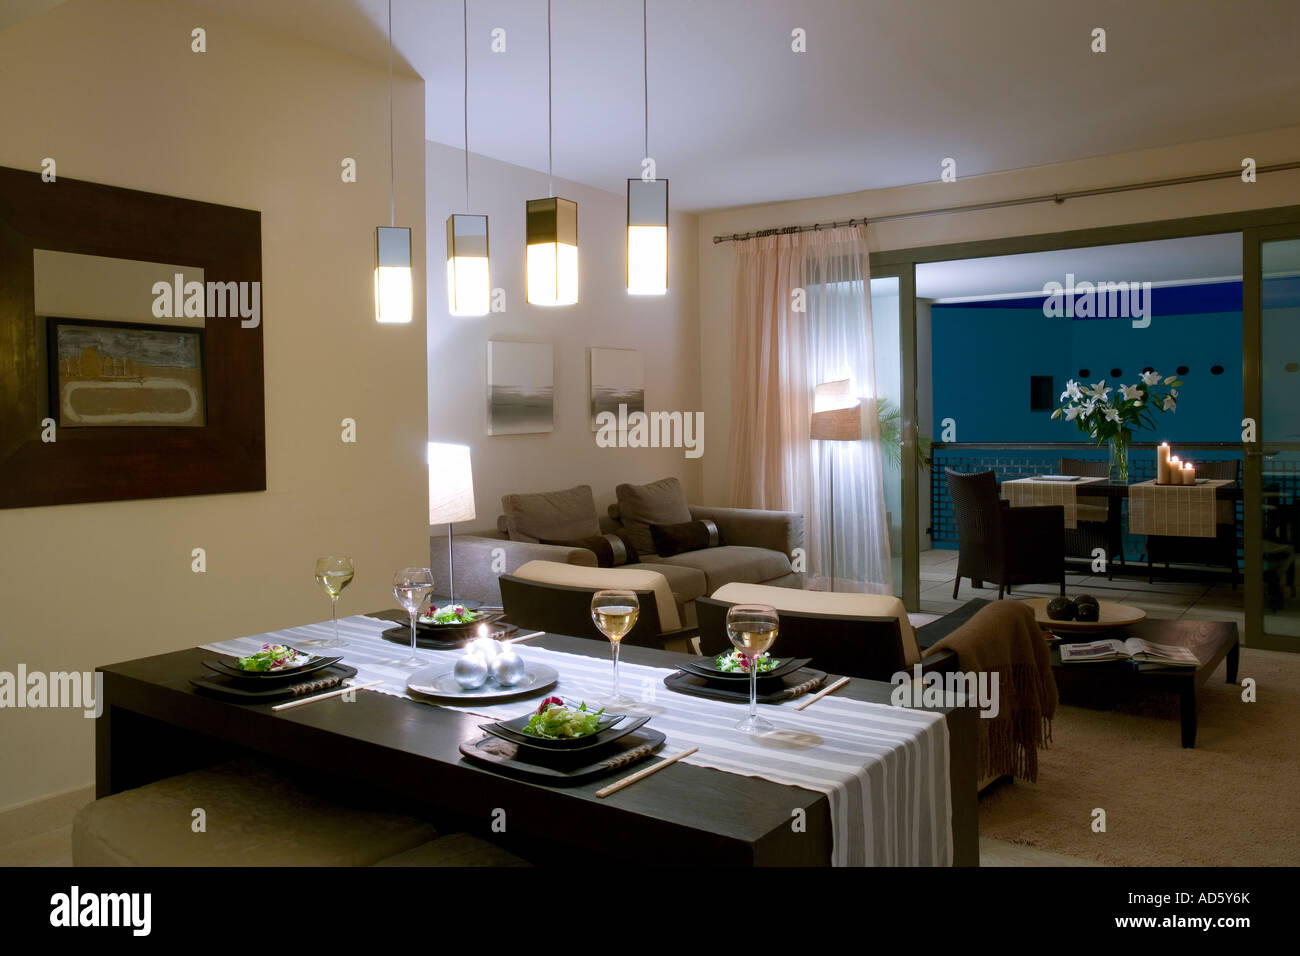 Lights Over Dining Table Pendant Lights Over Dining Table In Modern Apartment Living Room